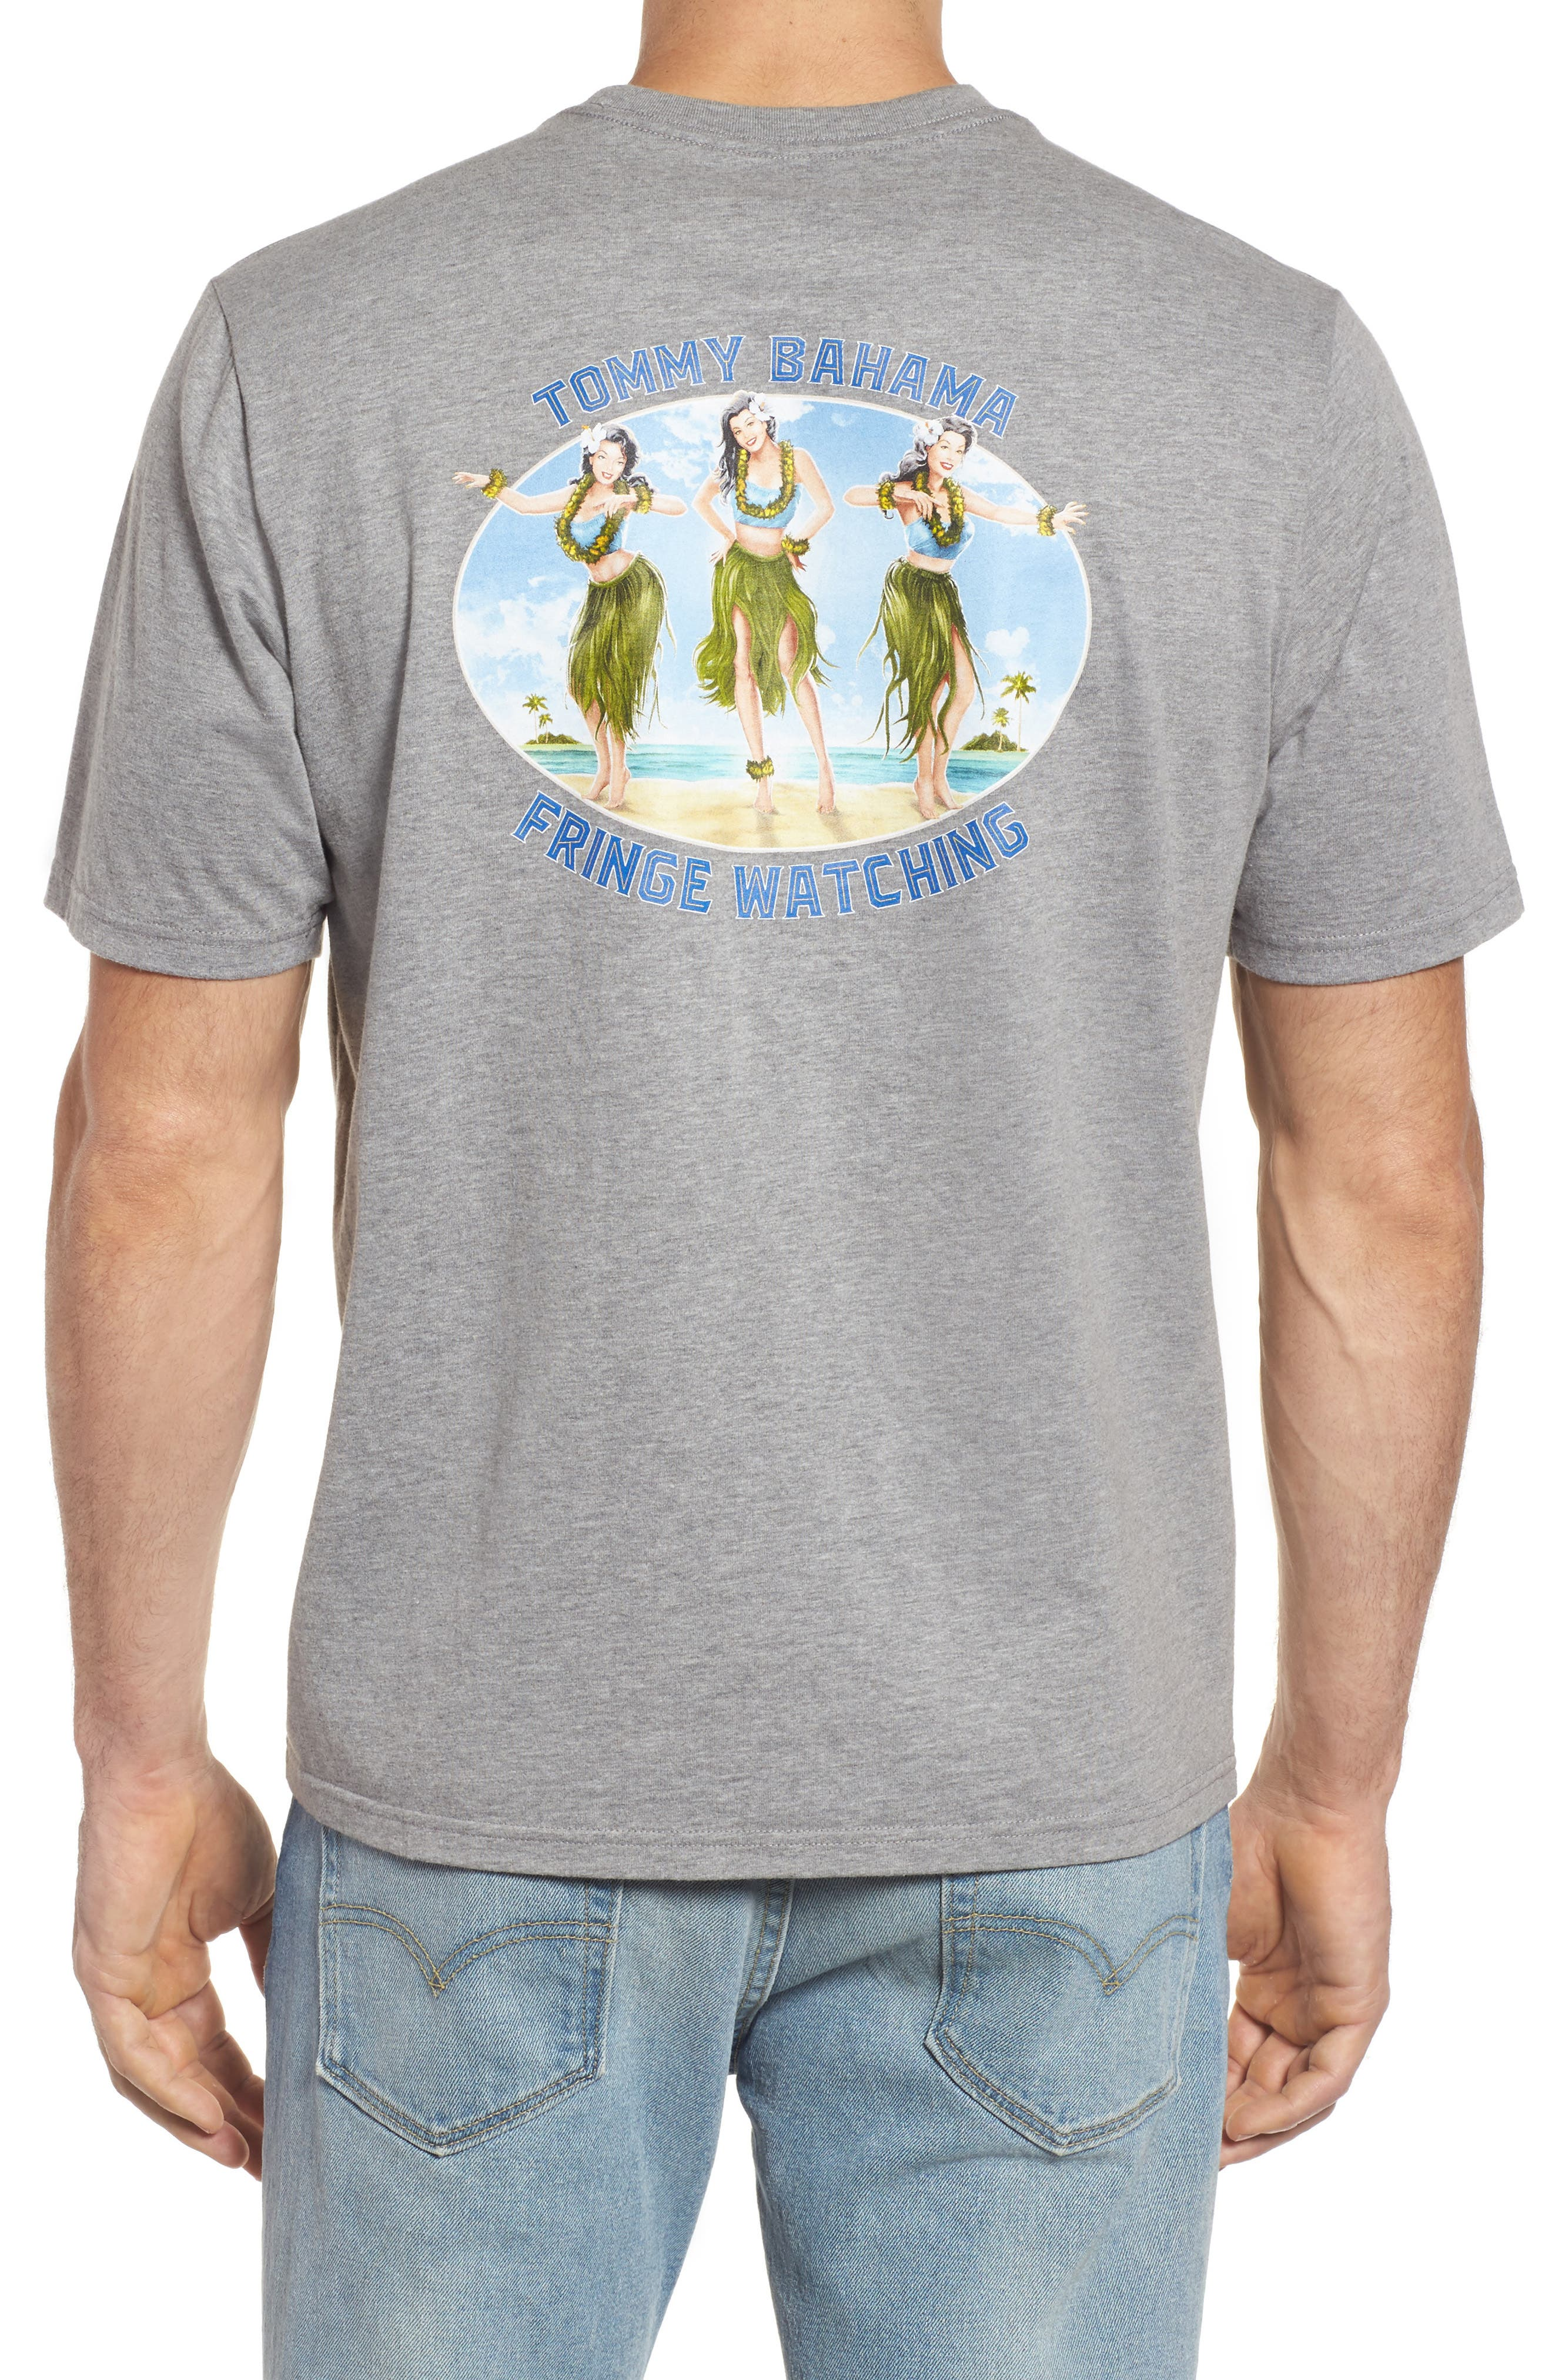 Fringe Watching Graphic T-Shirt,                             Alternate thumbnail 2, color,                             050